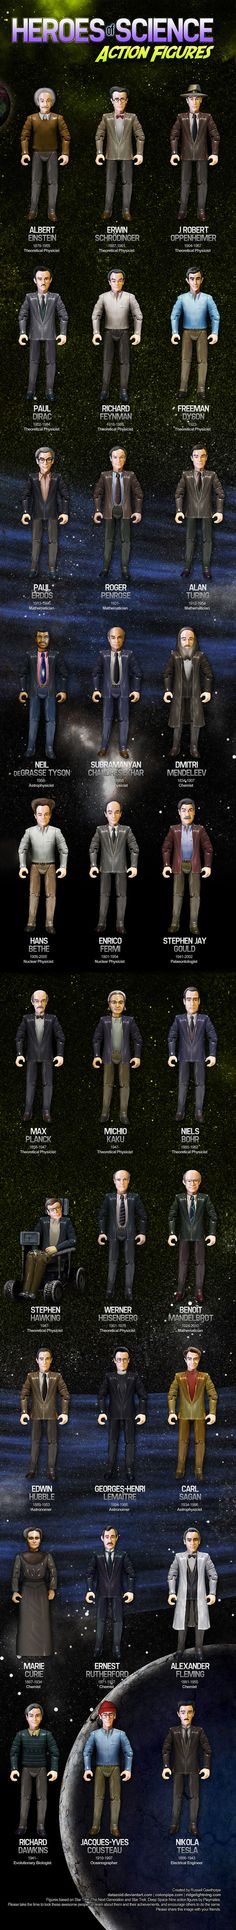 Heroes of Science Action Figures - What my friends think I do